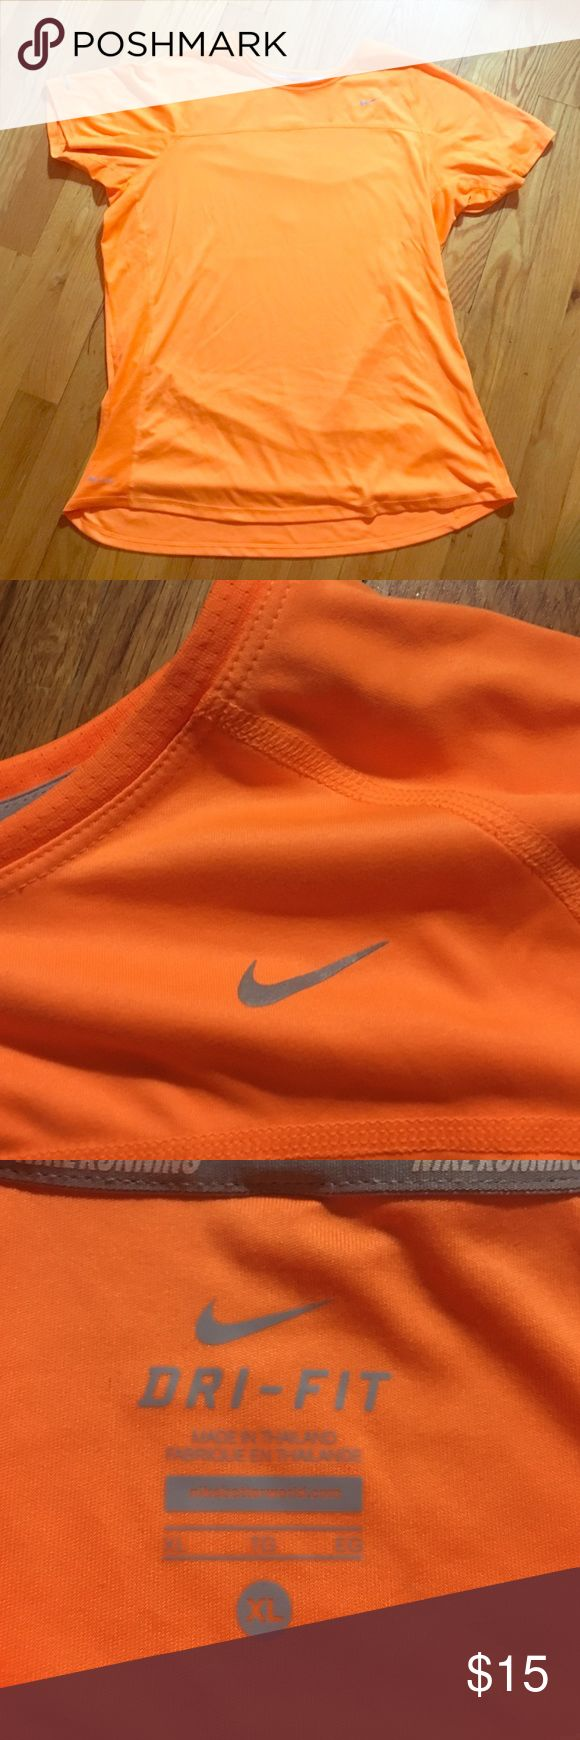 Nike women's running top. Authentic Nike women's running top. Color is orange and size is XL. Great for night runs and bold personalities! Dri-Fit material keeps you cool while running. Nike Tops Tees - Short Sleeve